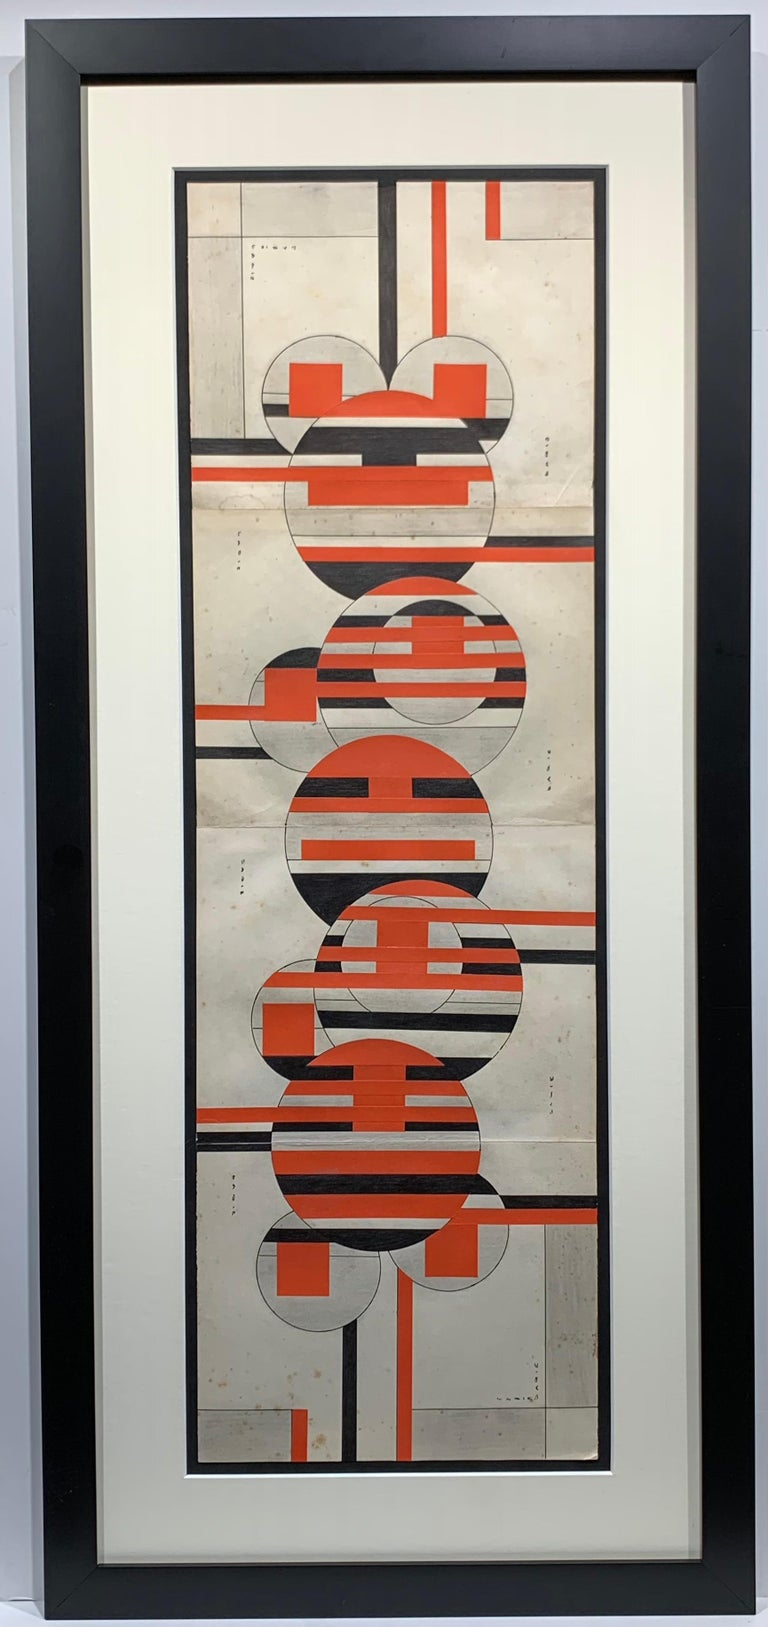 Sandu Darie Abstract Painting - Untitled (Cuban Artist Geometric Collage Composition)